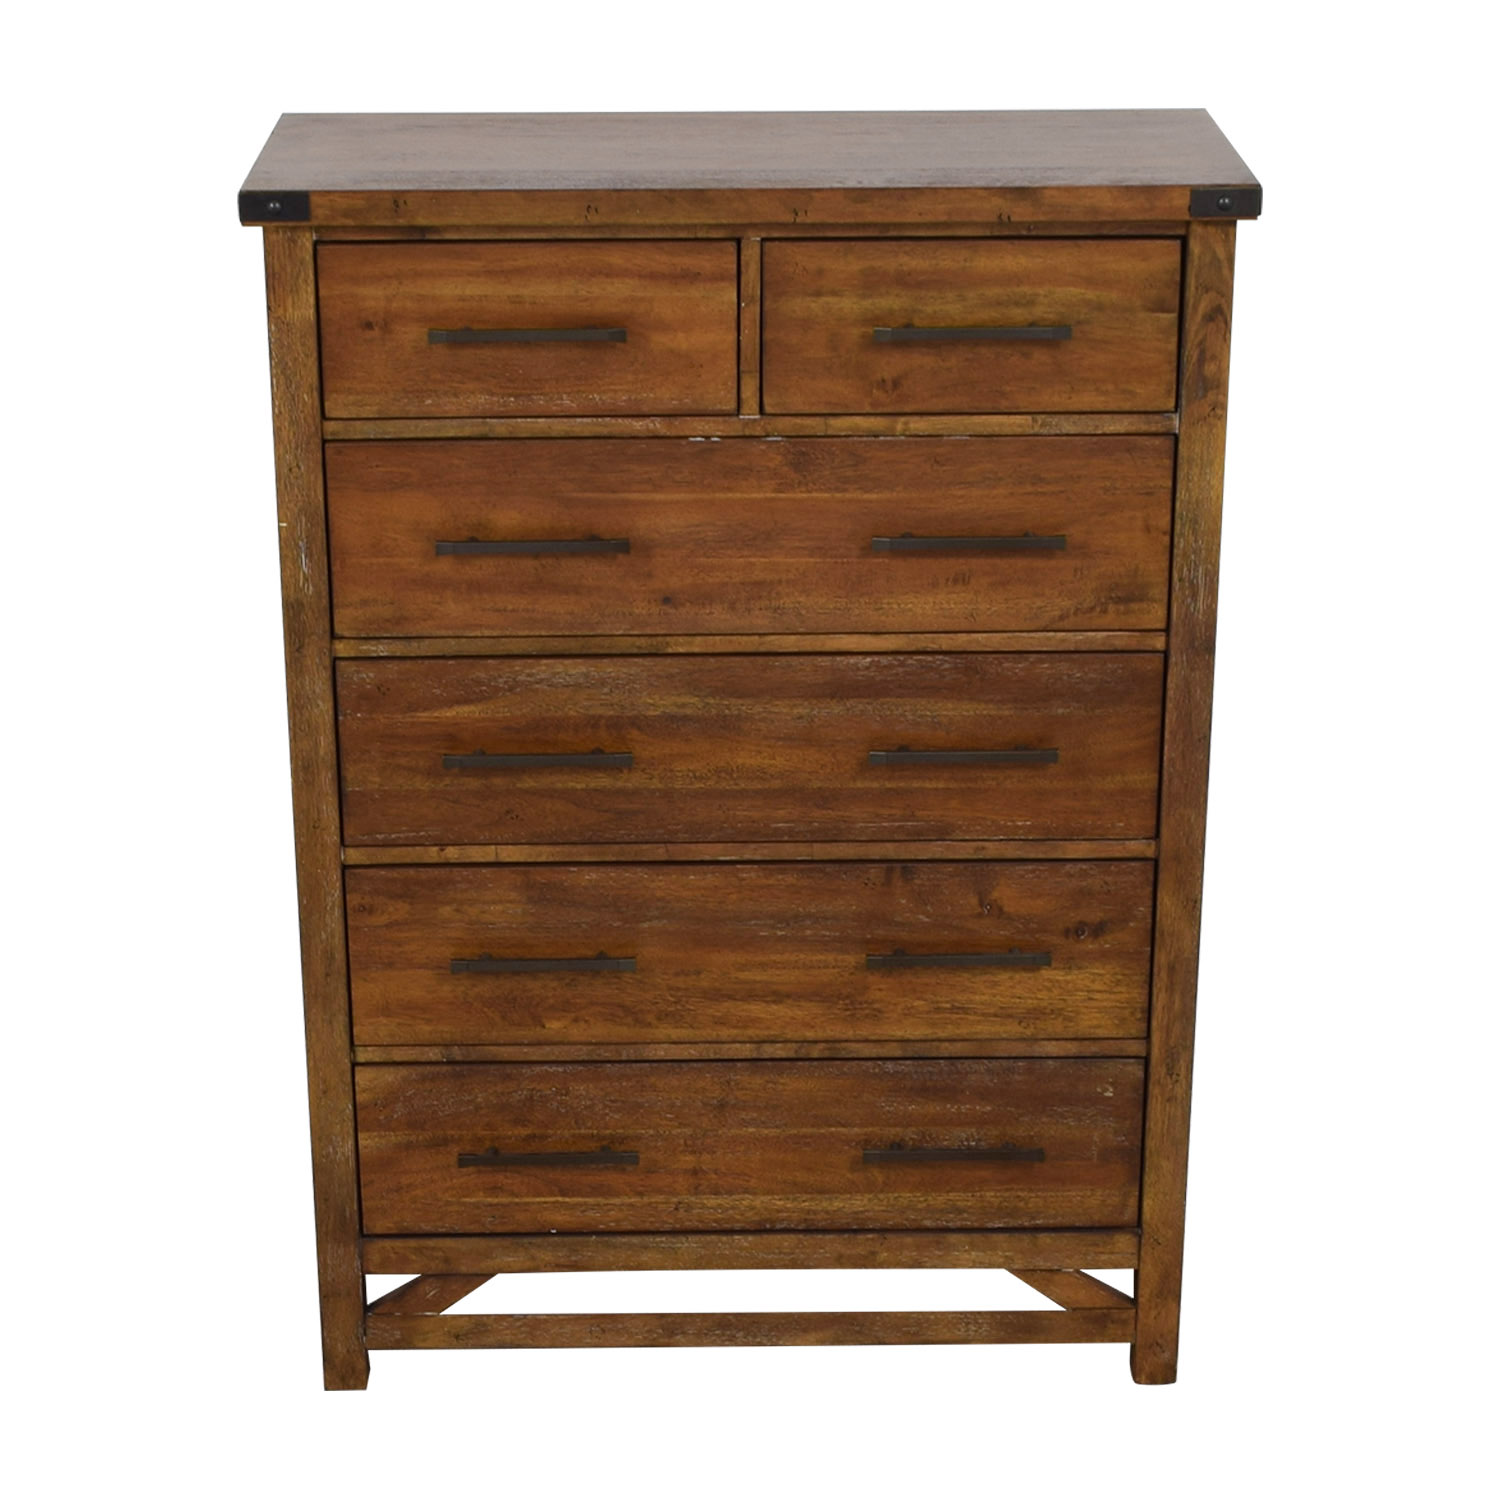 Walter of Wabash Walter of Wabash Six-Drawer Tall Chest of Drawers brown